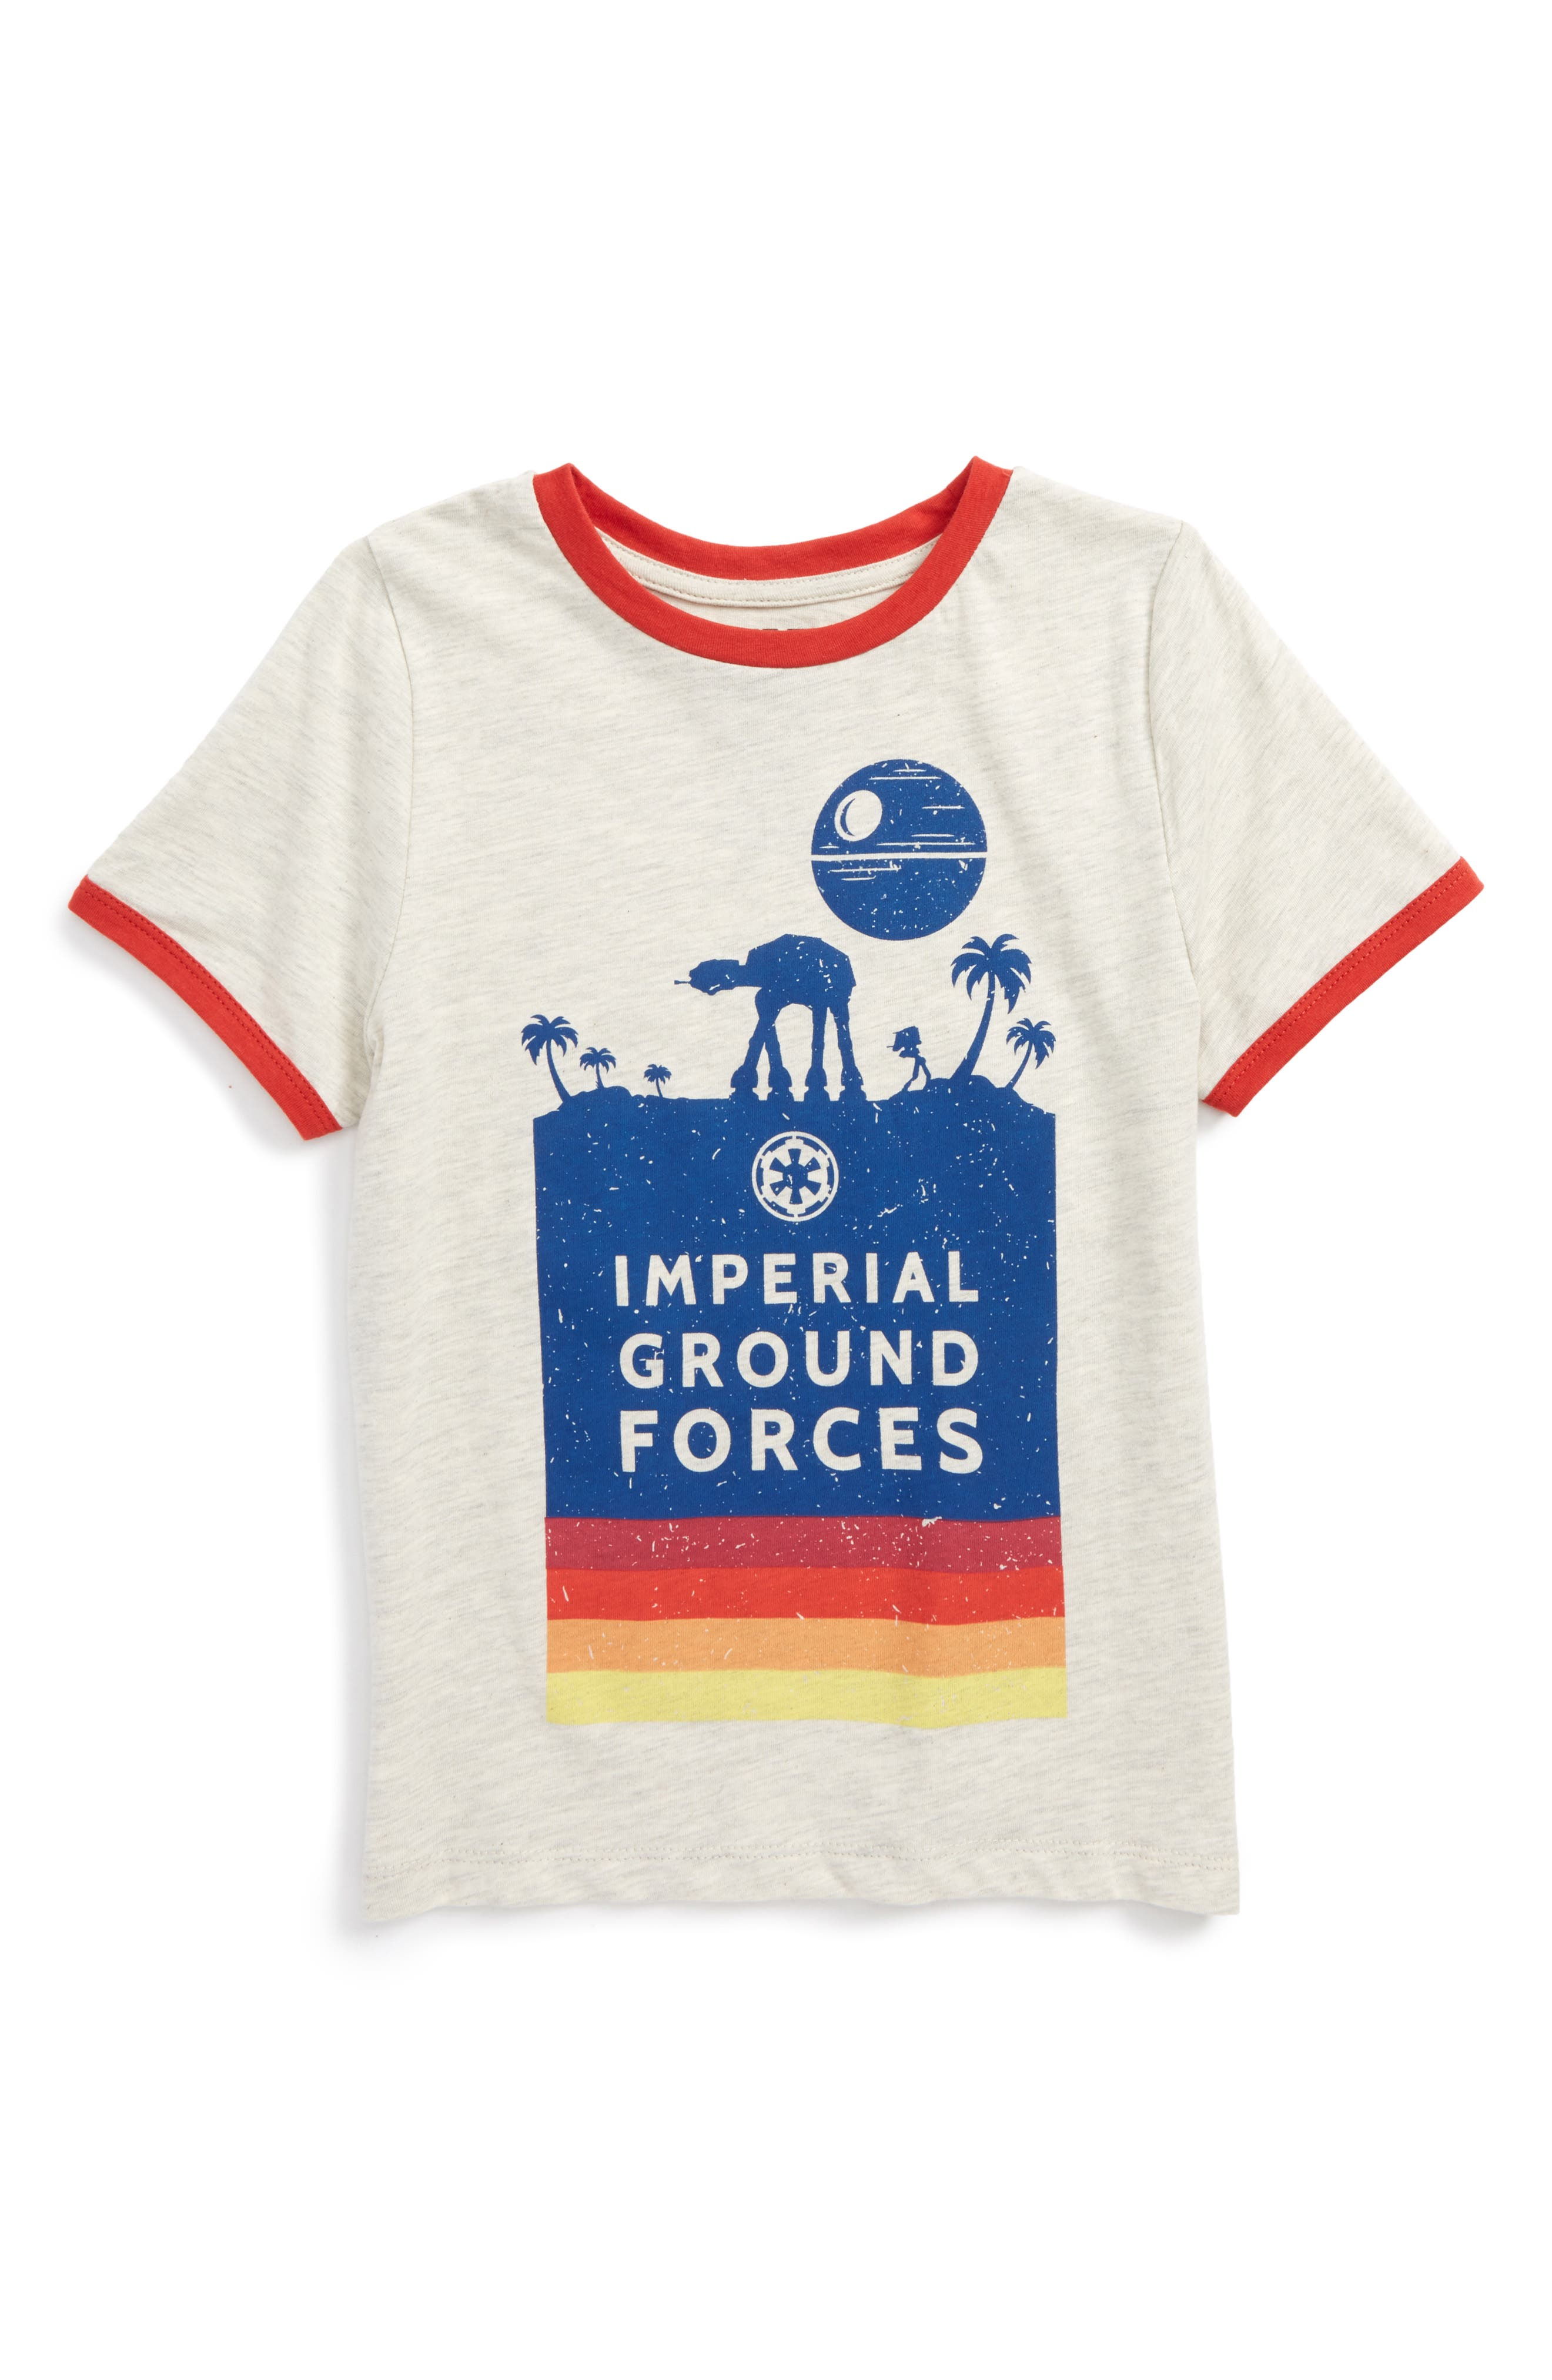 Main Image - Mighty Fine x Star Wars™ Imperial Ground Forces T-Shirt (Toddler Boys & Little Boys)